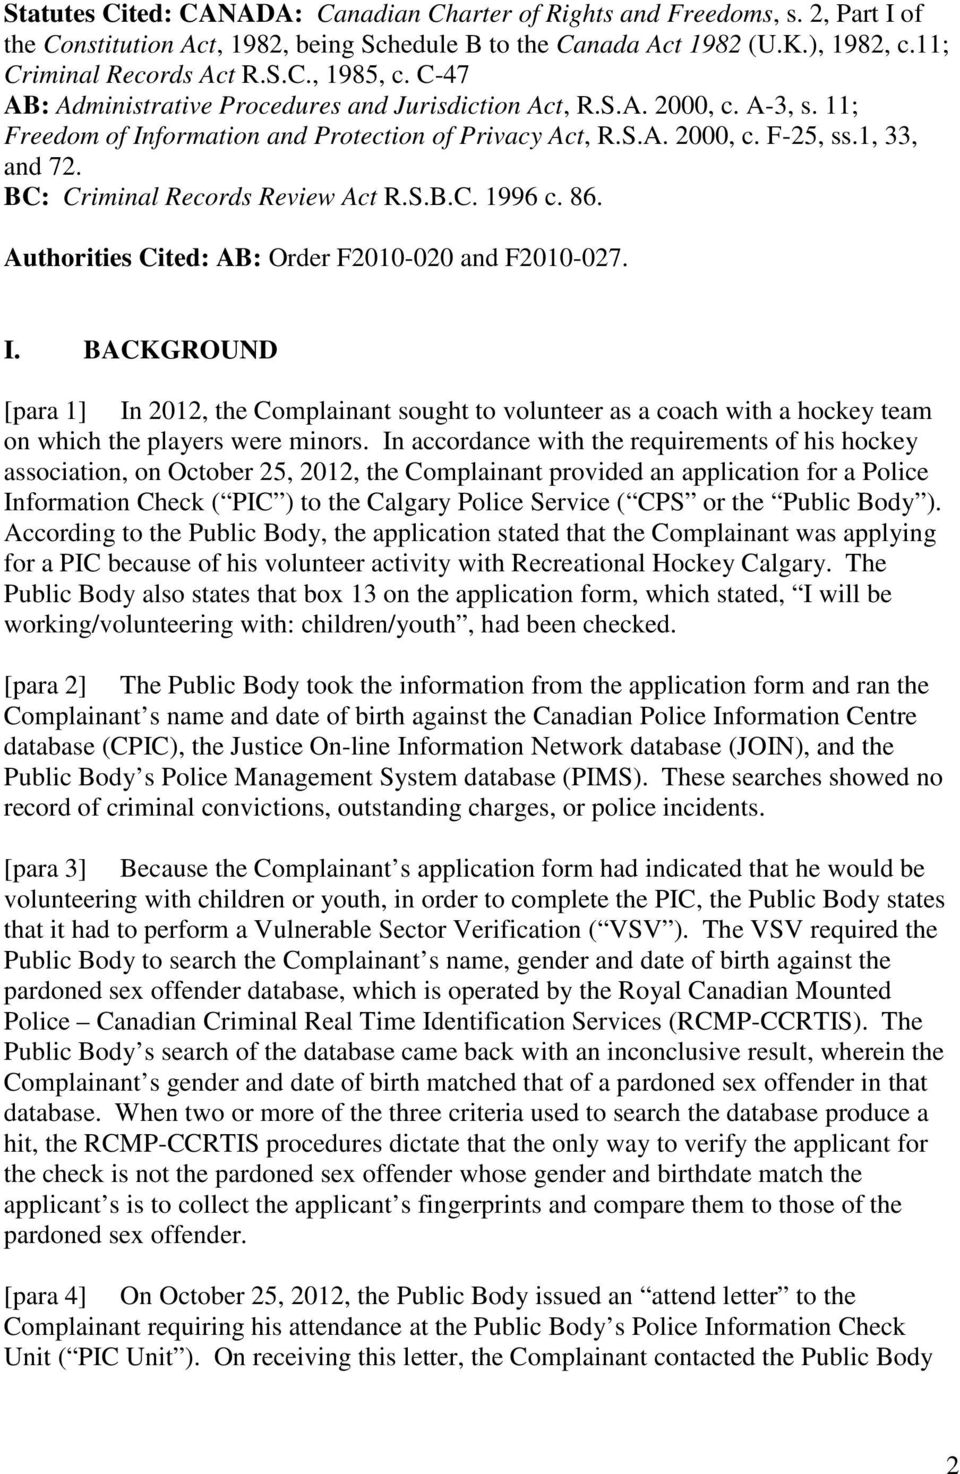 BC: Criminal Records Review Act R.S.B.C. 1996 c. 86. Authorities Cited: AB: Order F2010-020 and F2010-027. I.